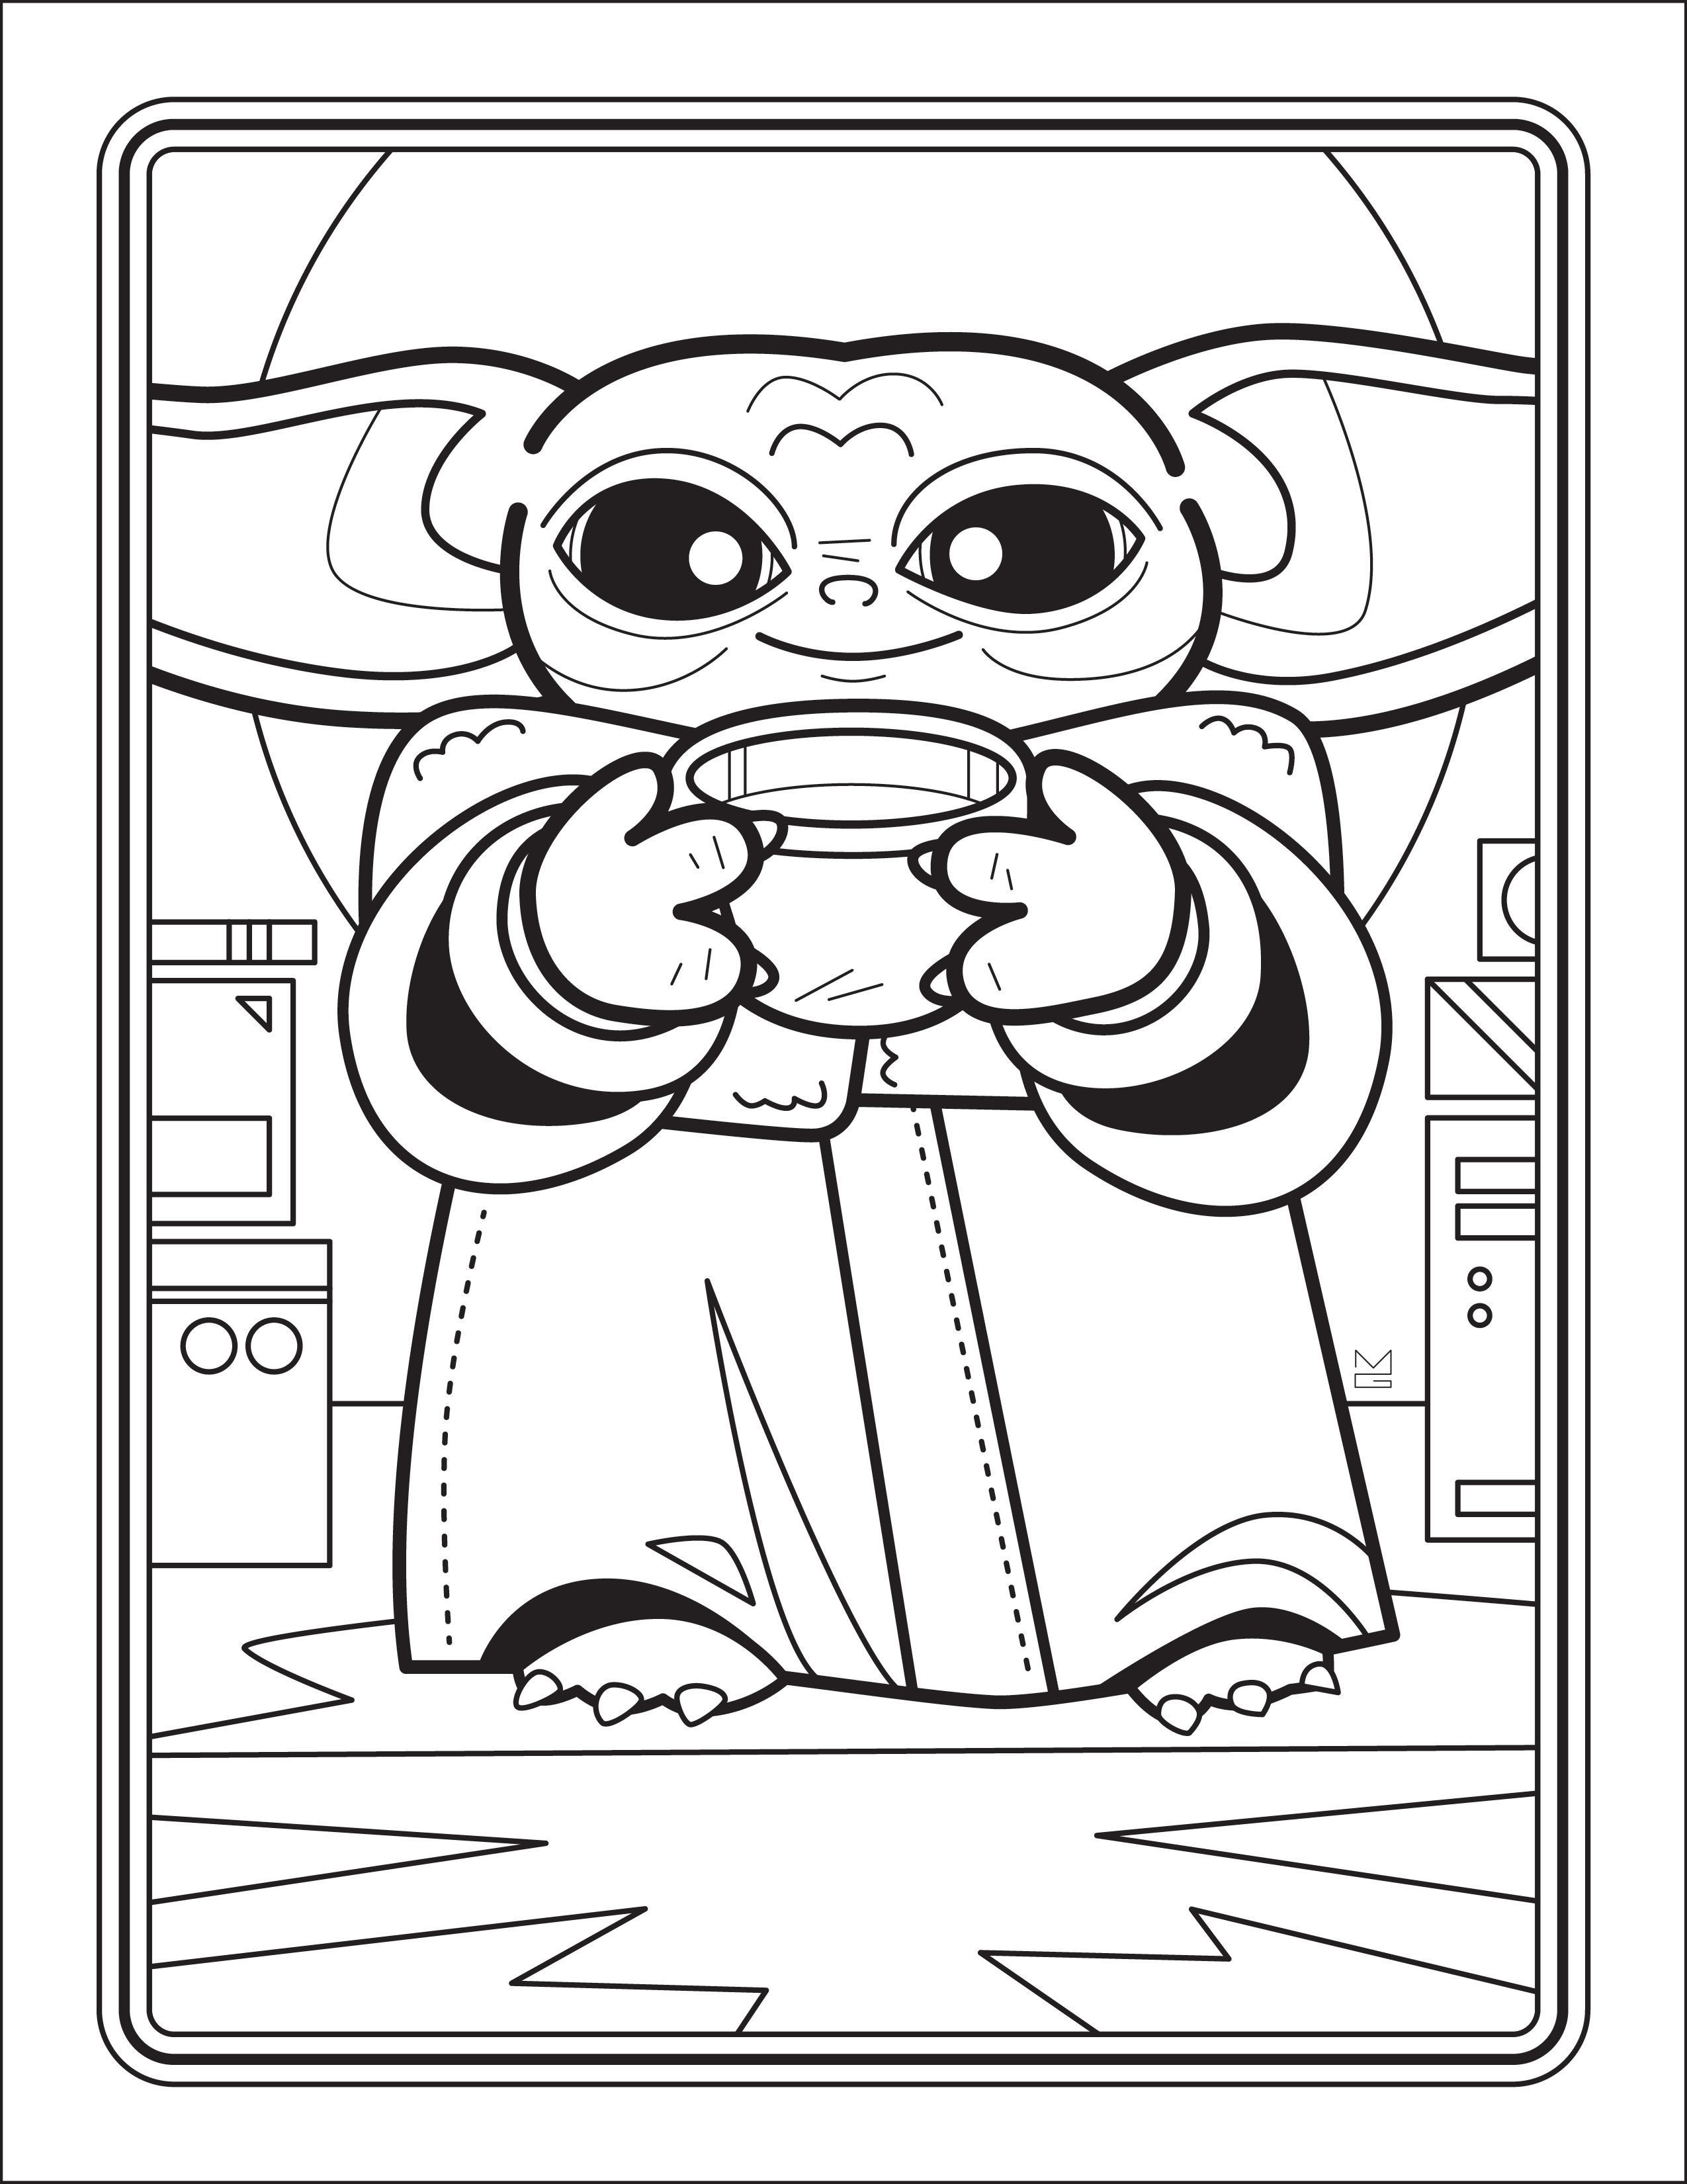 Free Baby Yoda Coloring Pages : coloring, pages, Coloring, Pages